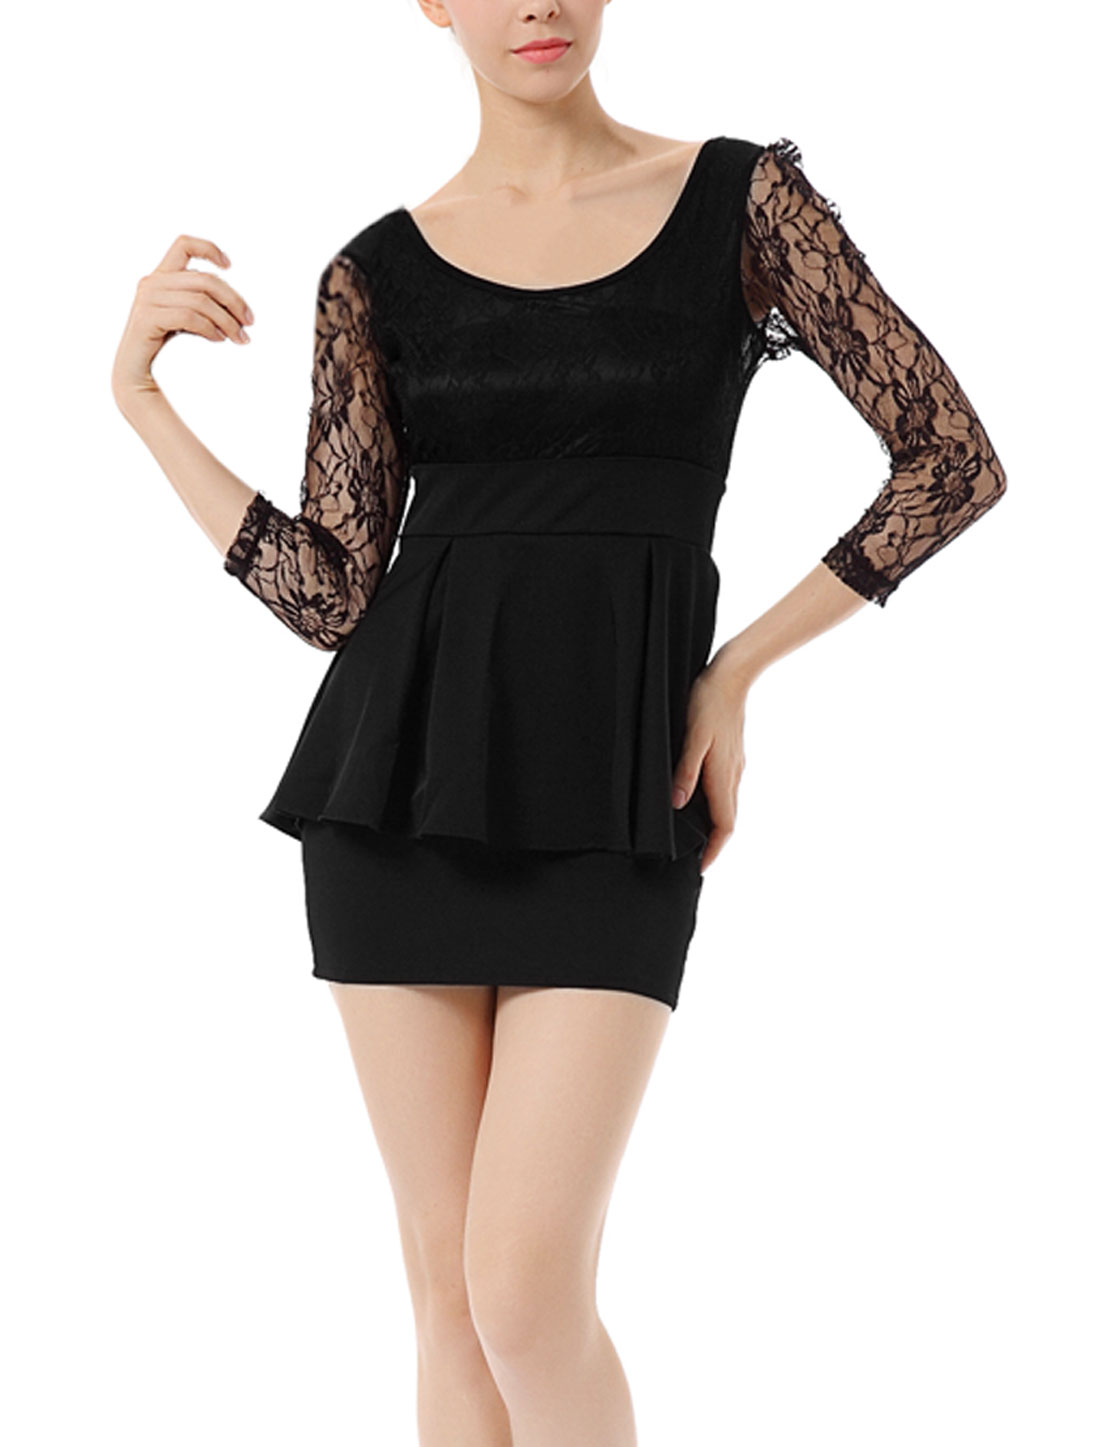 Ladies Sheer Lace Floral Bust Empire Waist Black Layers Dress S